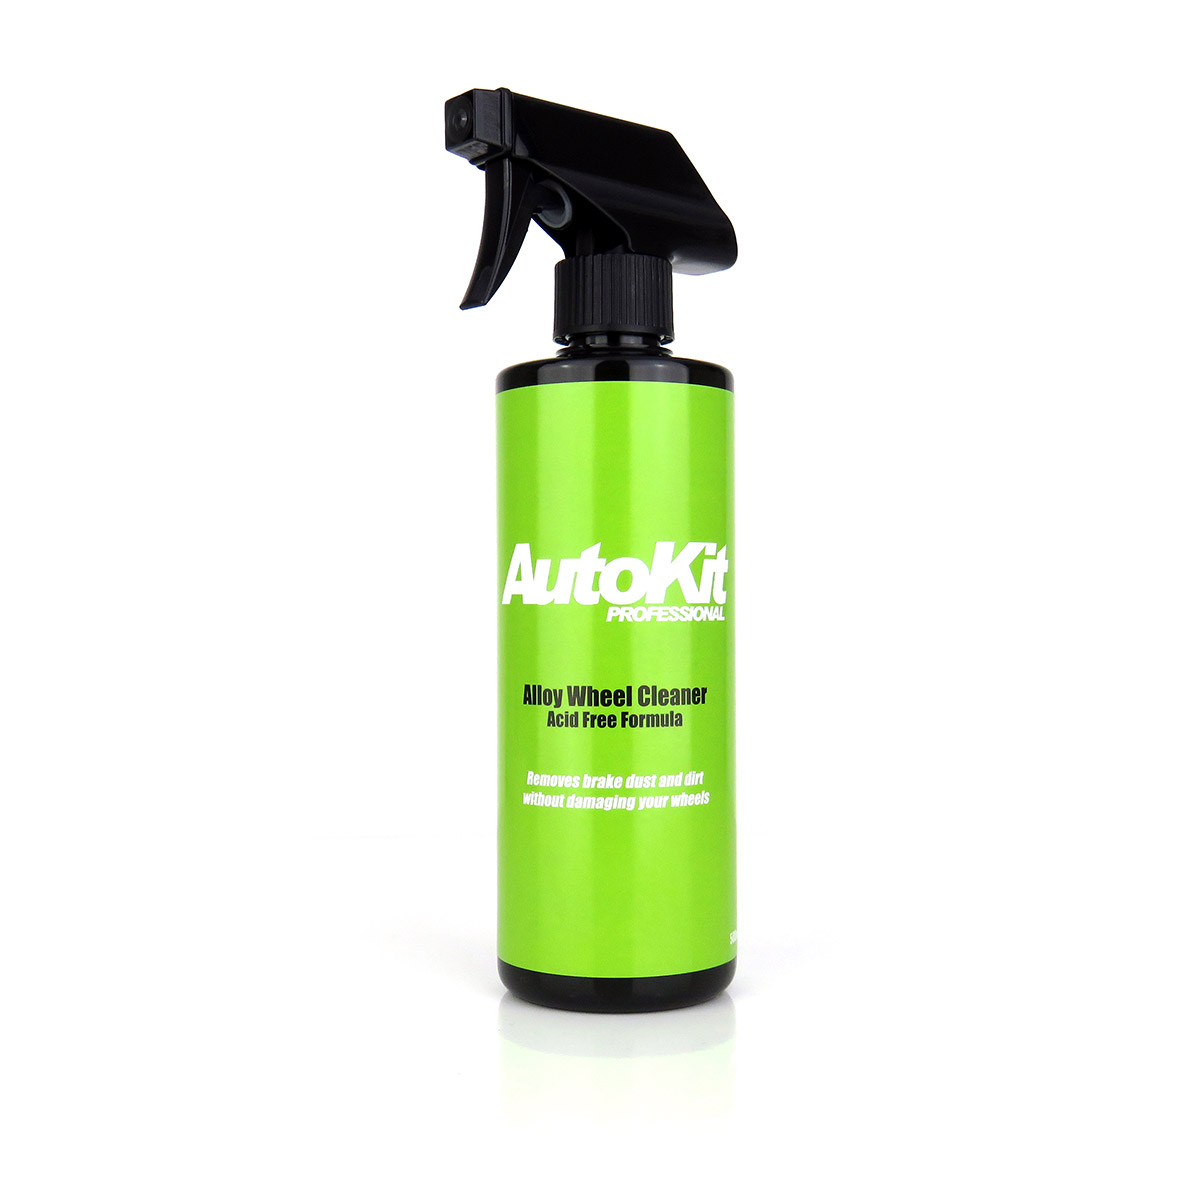 AutoKit Alloy Wheel Cleaner